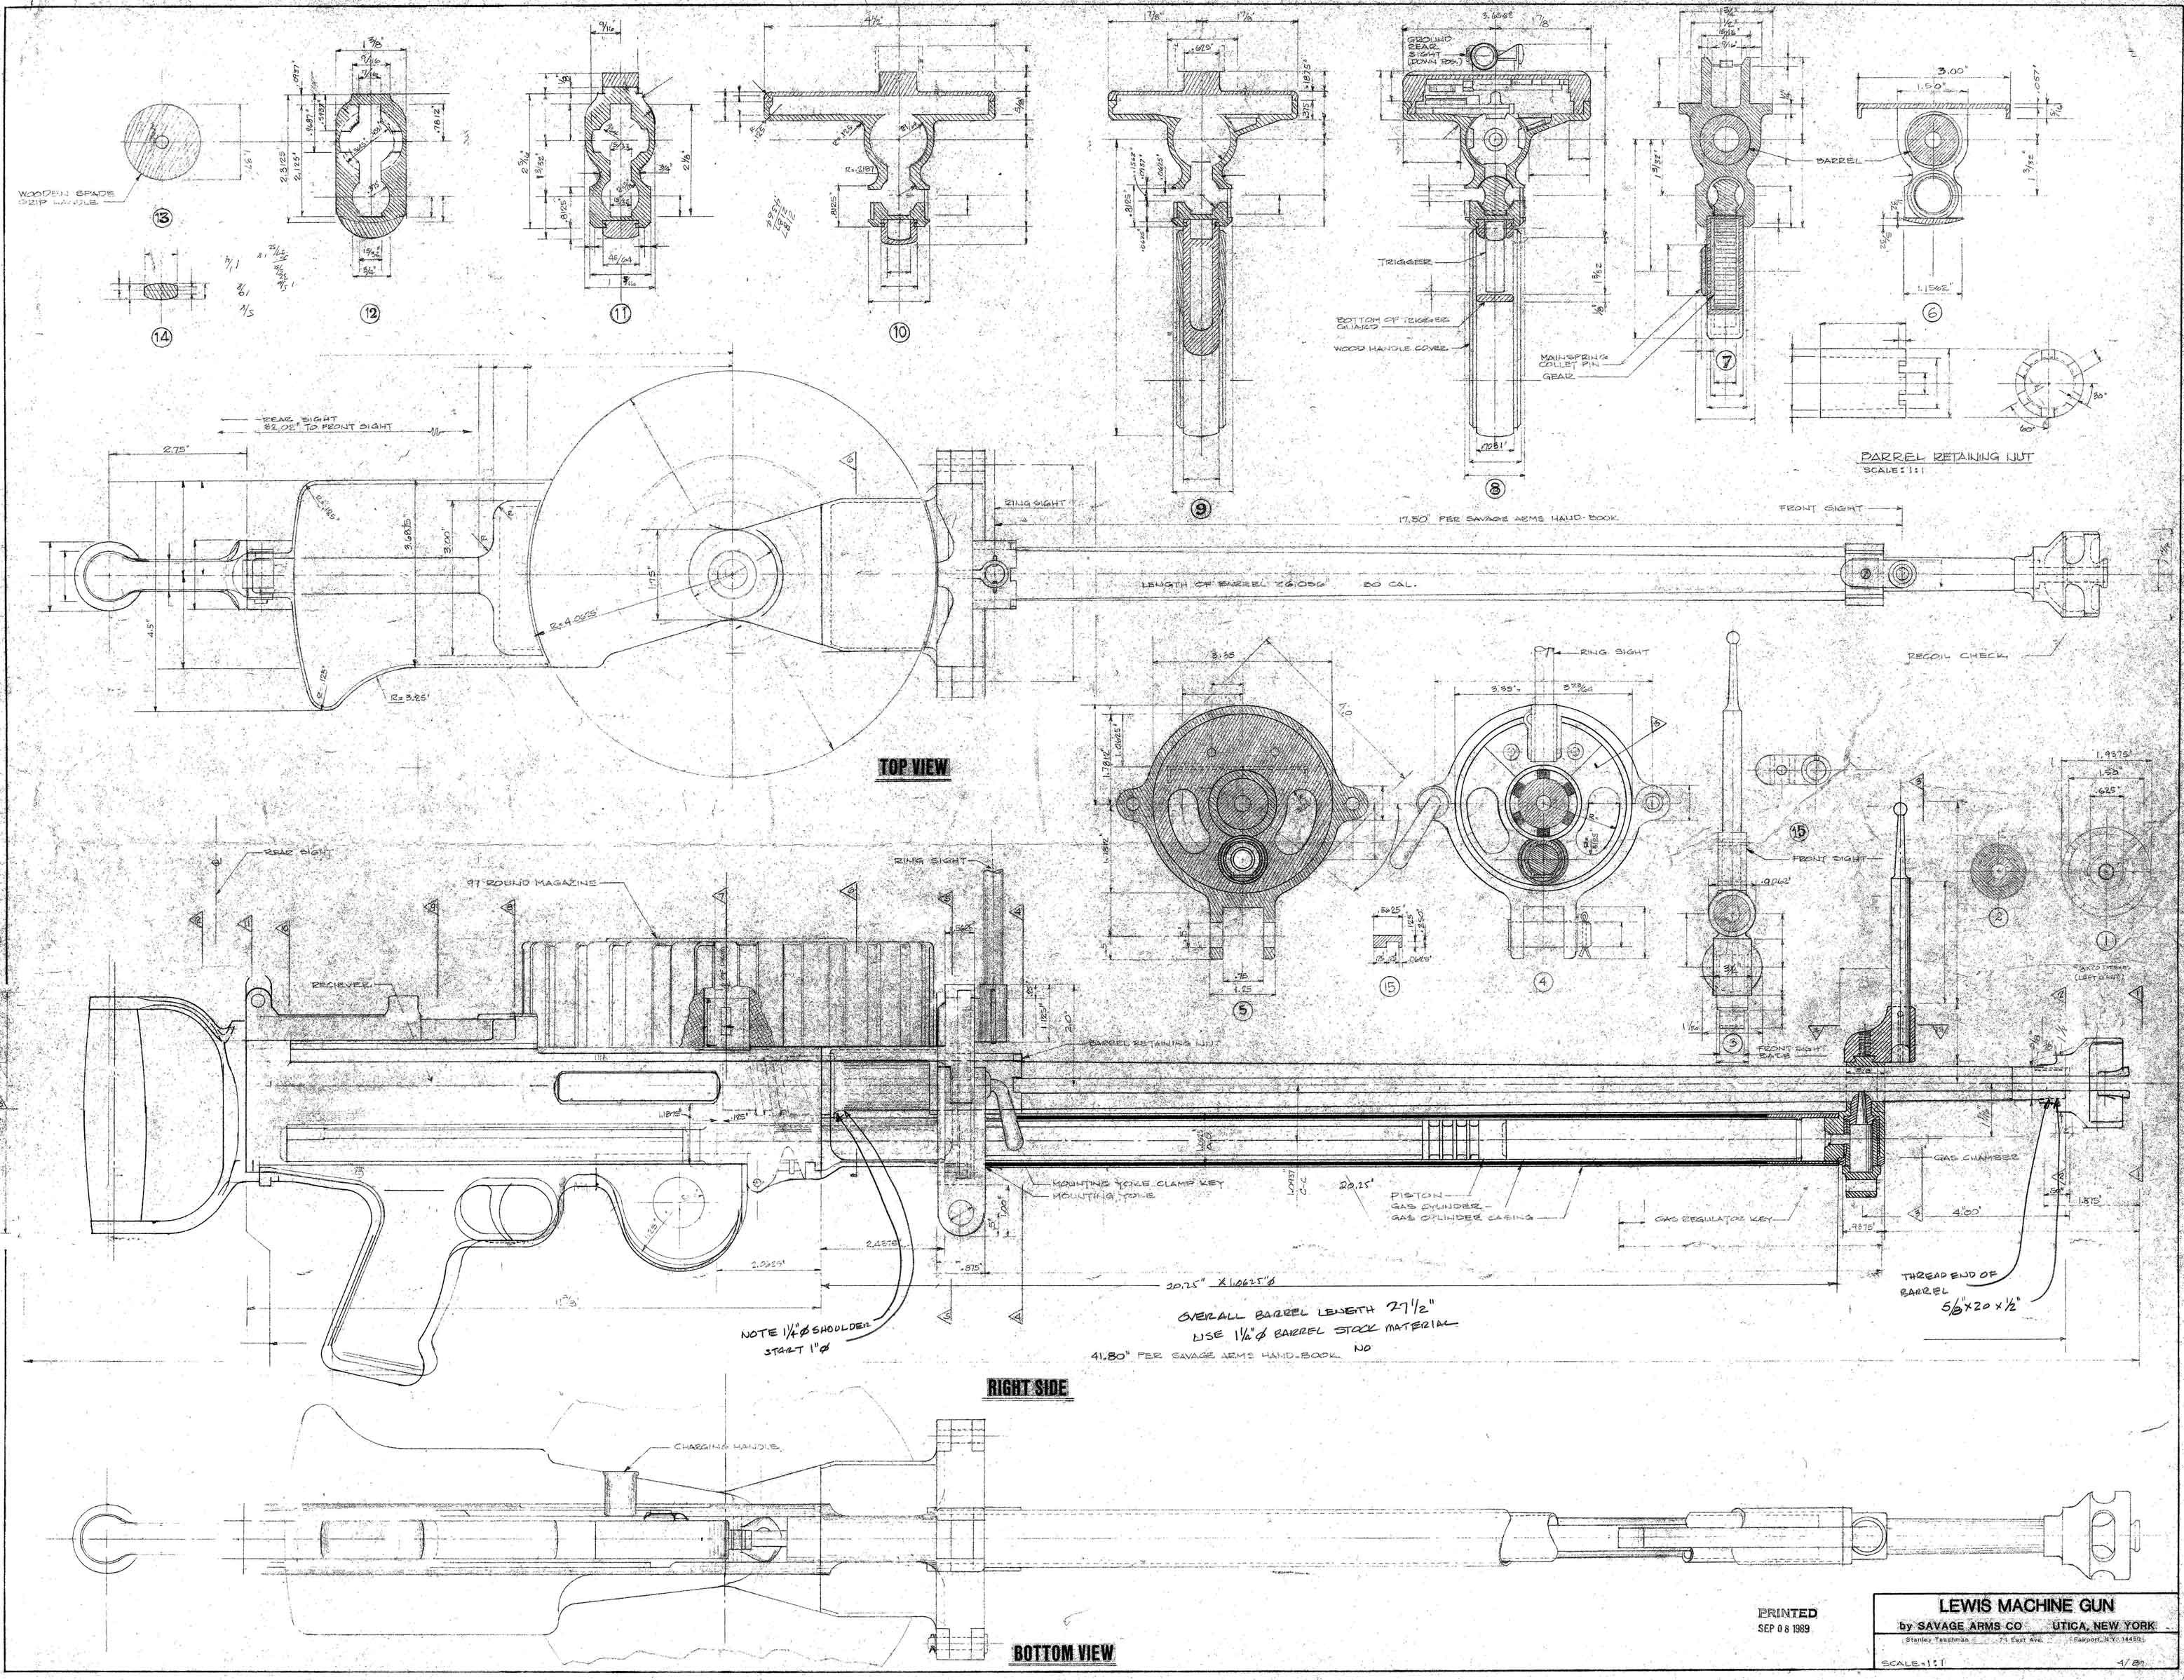 Lewis machine gun blueprint pinterest lewis machine gun blueprint malvernweather Image collections